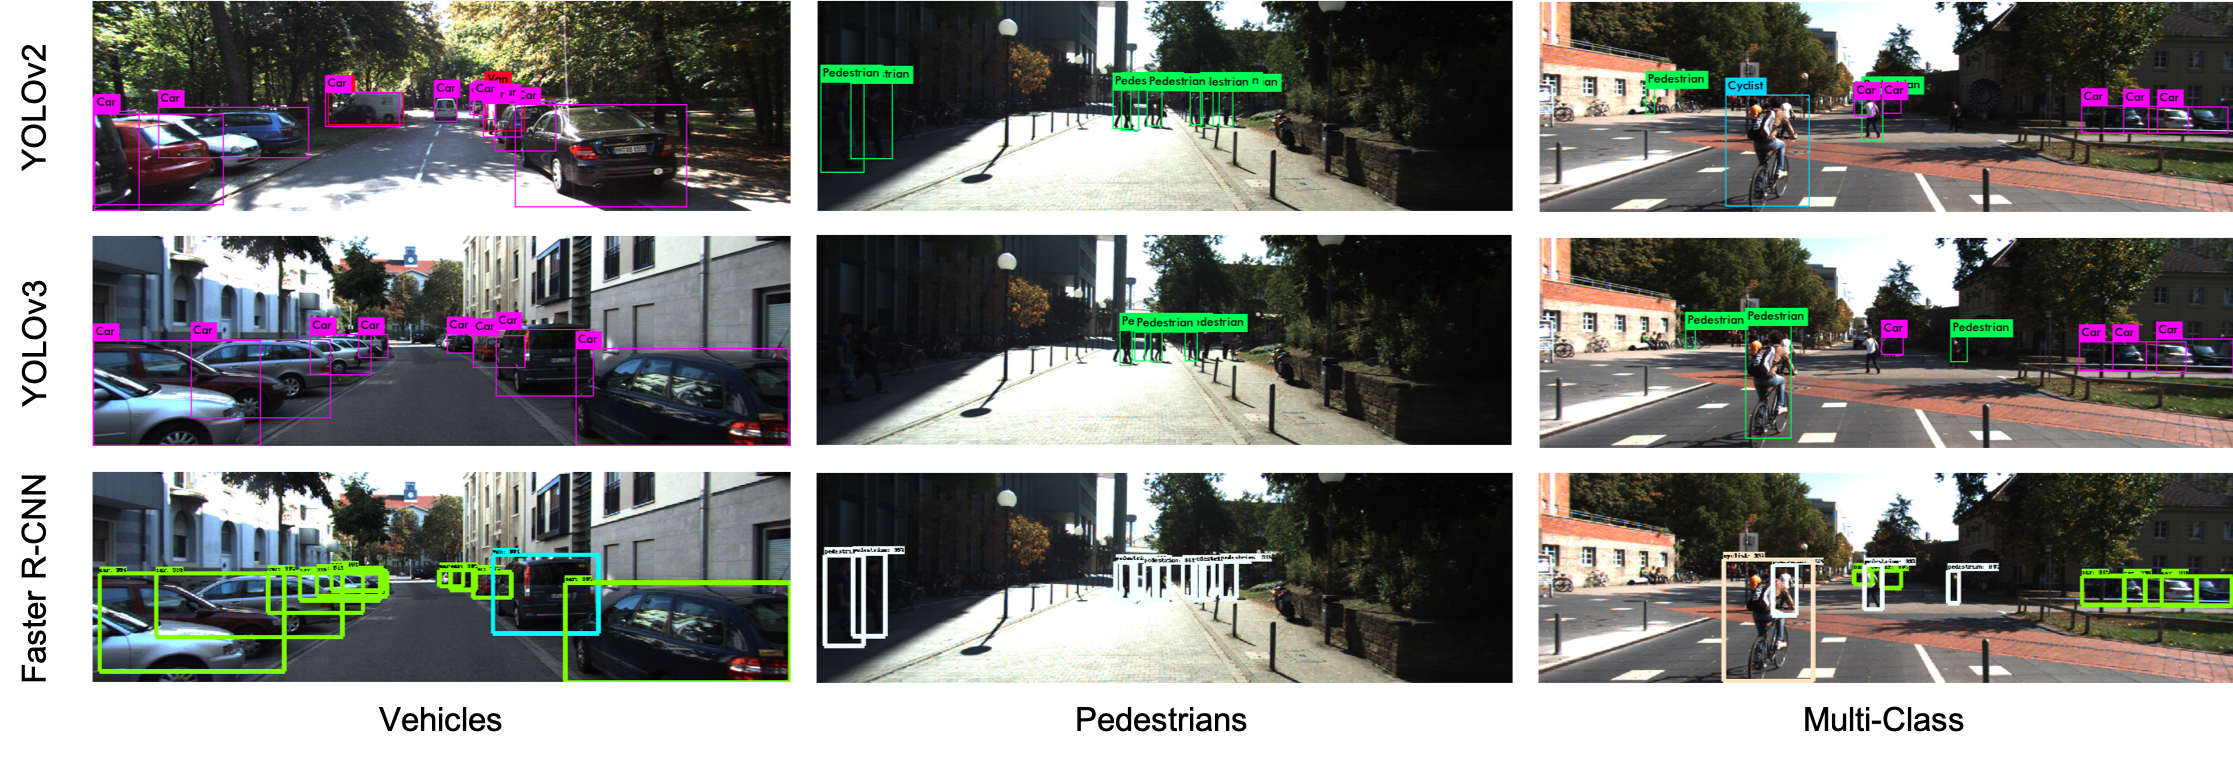 Object Detection on KITTI dataset using YOLO and Faster R-CNN